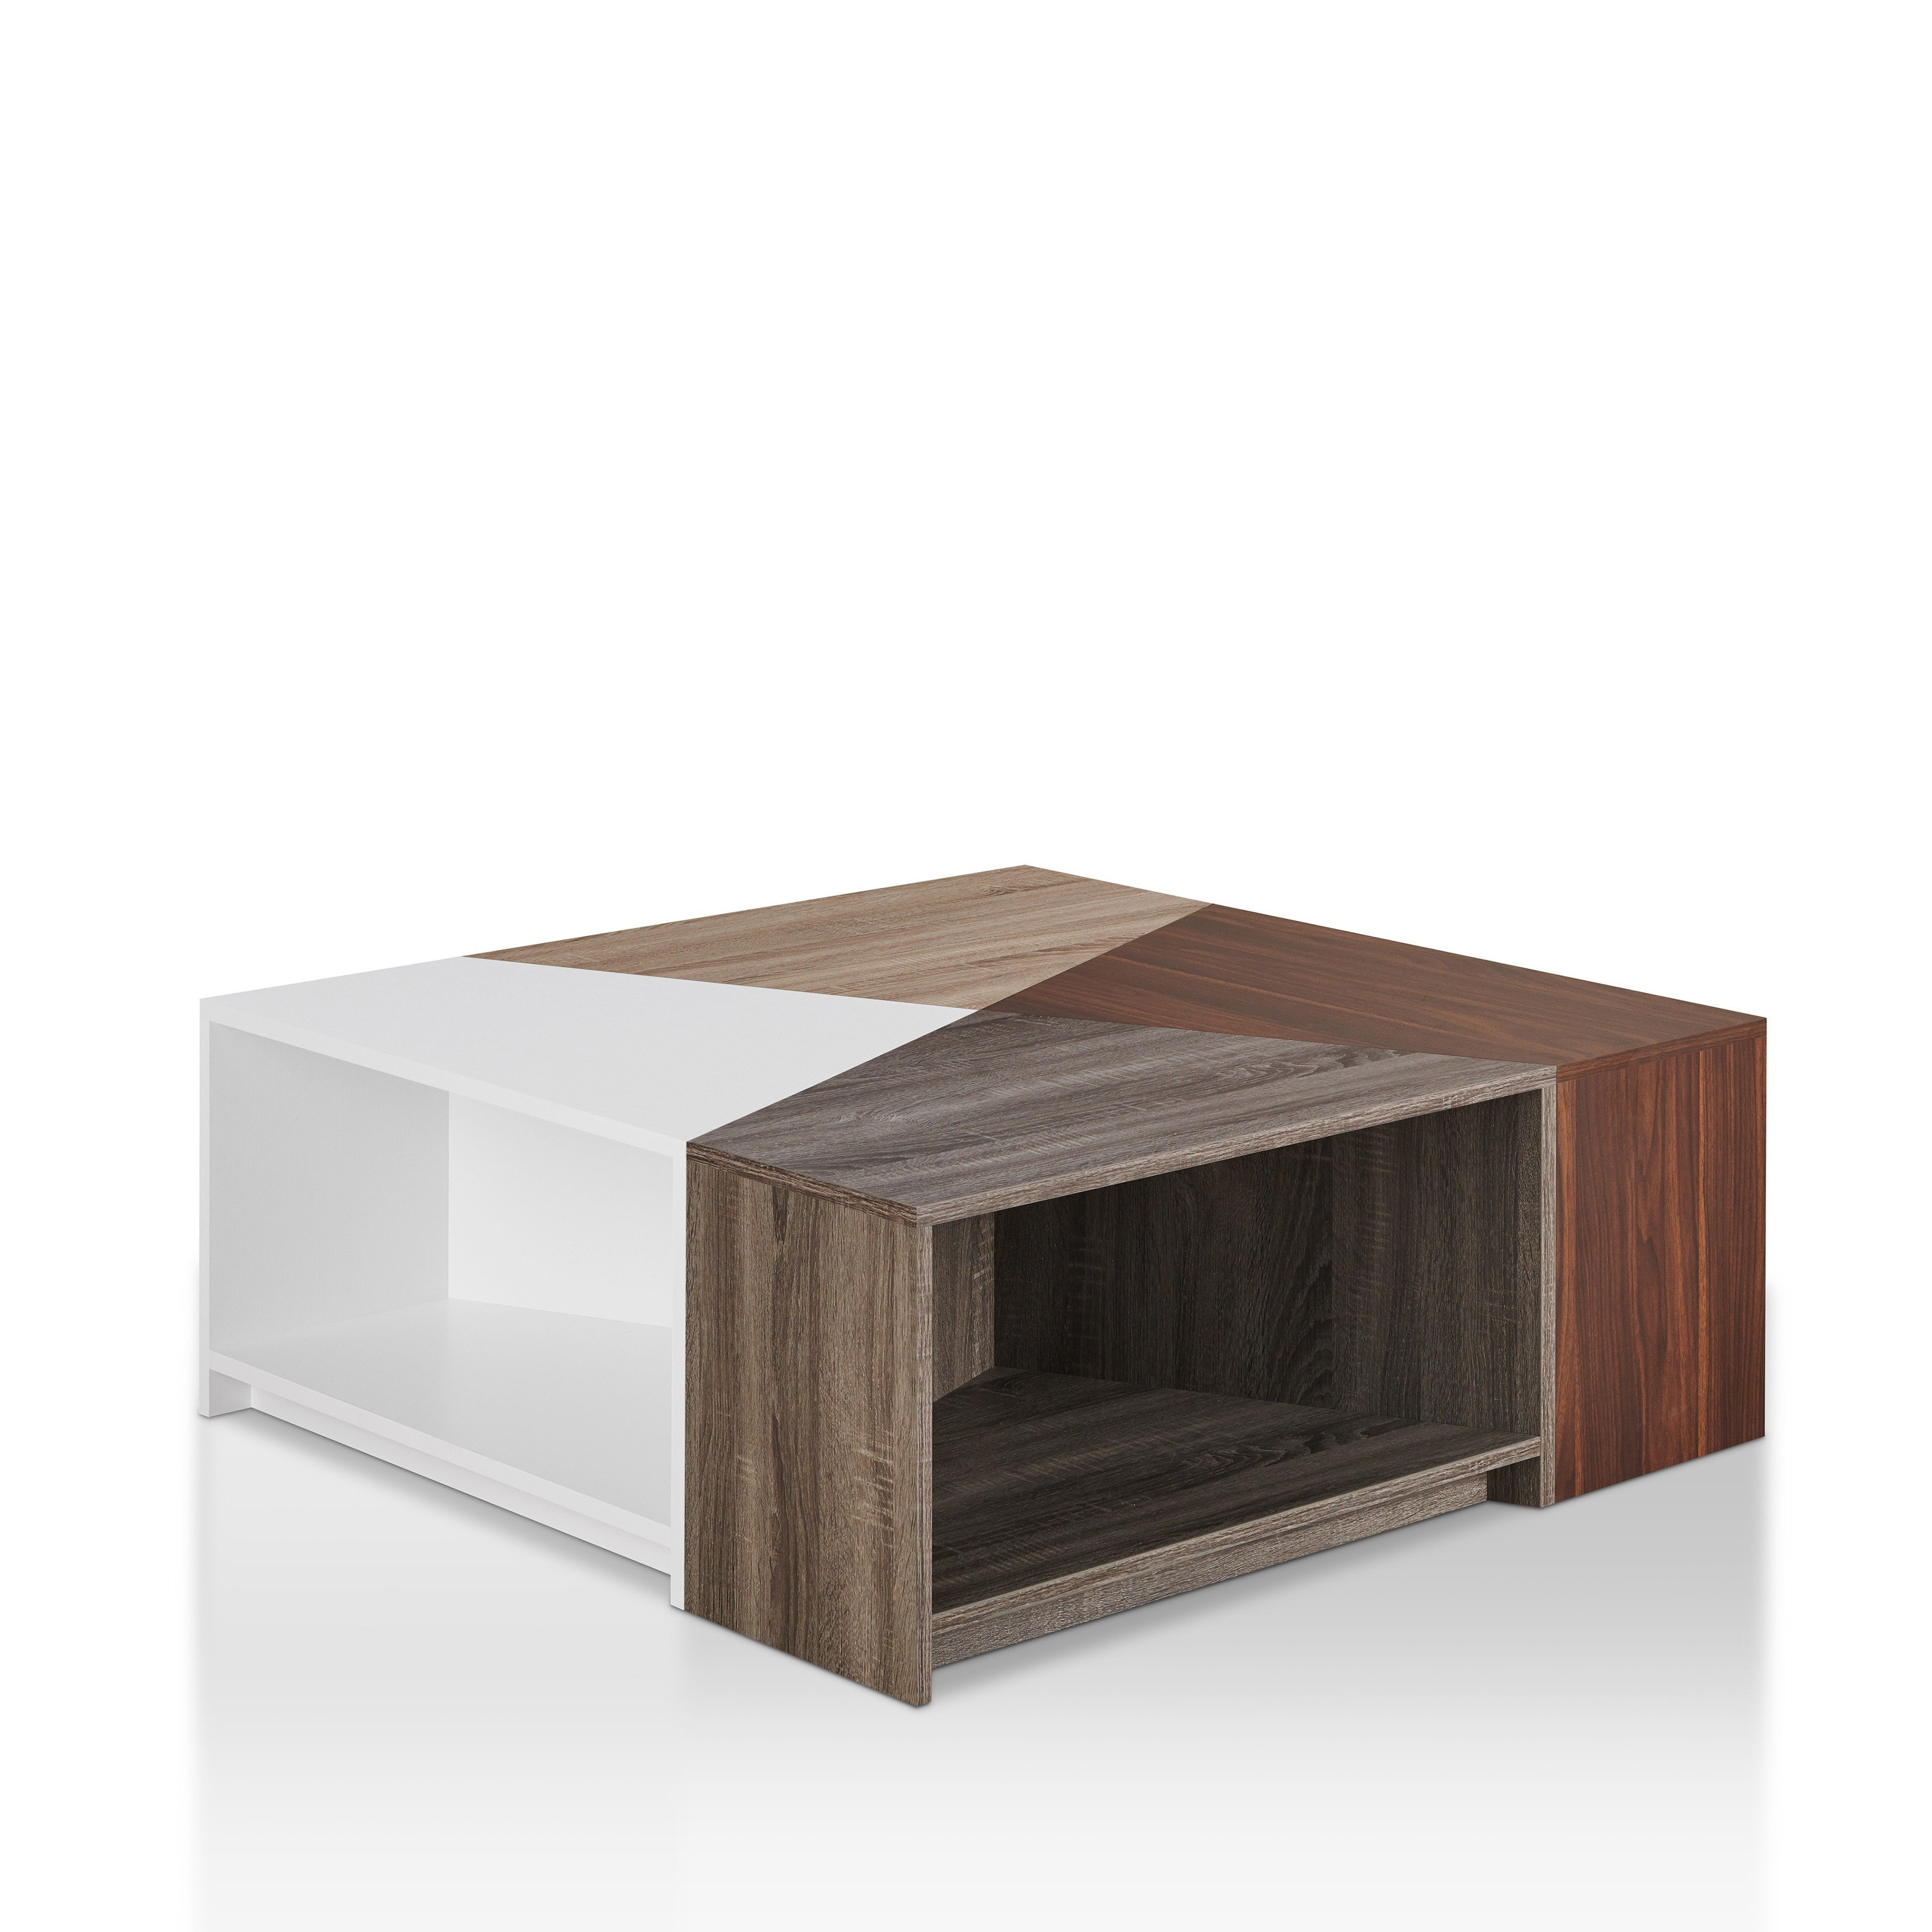 Modular Coffee Tables Within Most Recent Shop Furniture Of America Deron Contemporary Multi Colored Modular (Gallery 18 of 20)